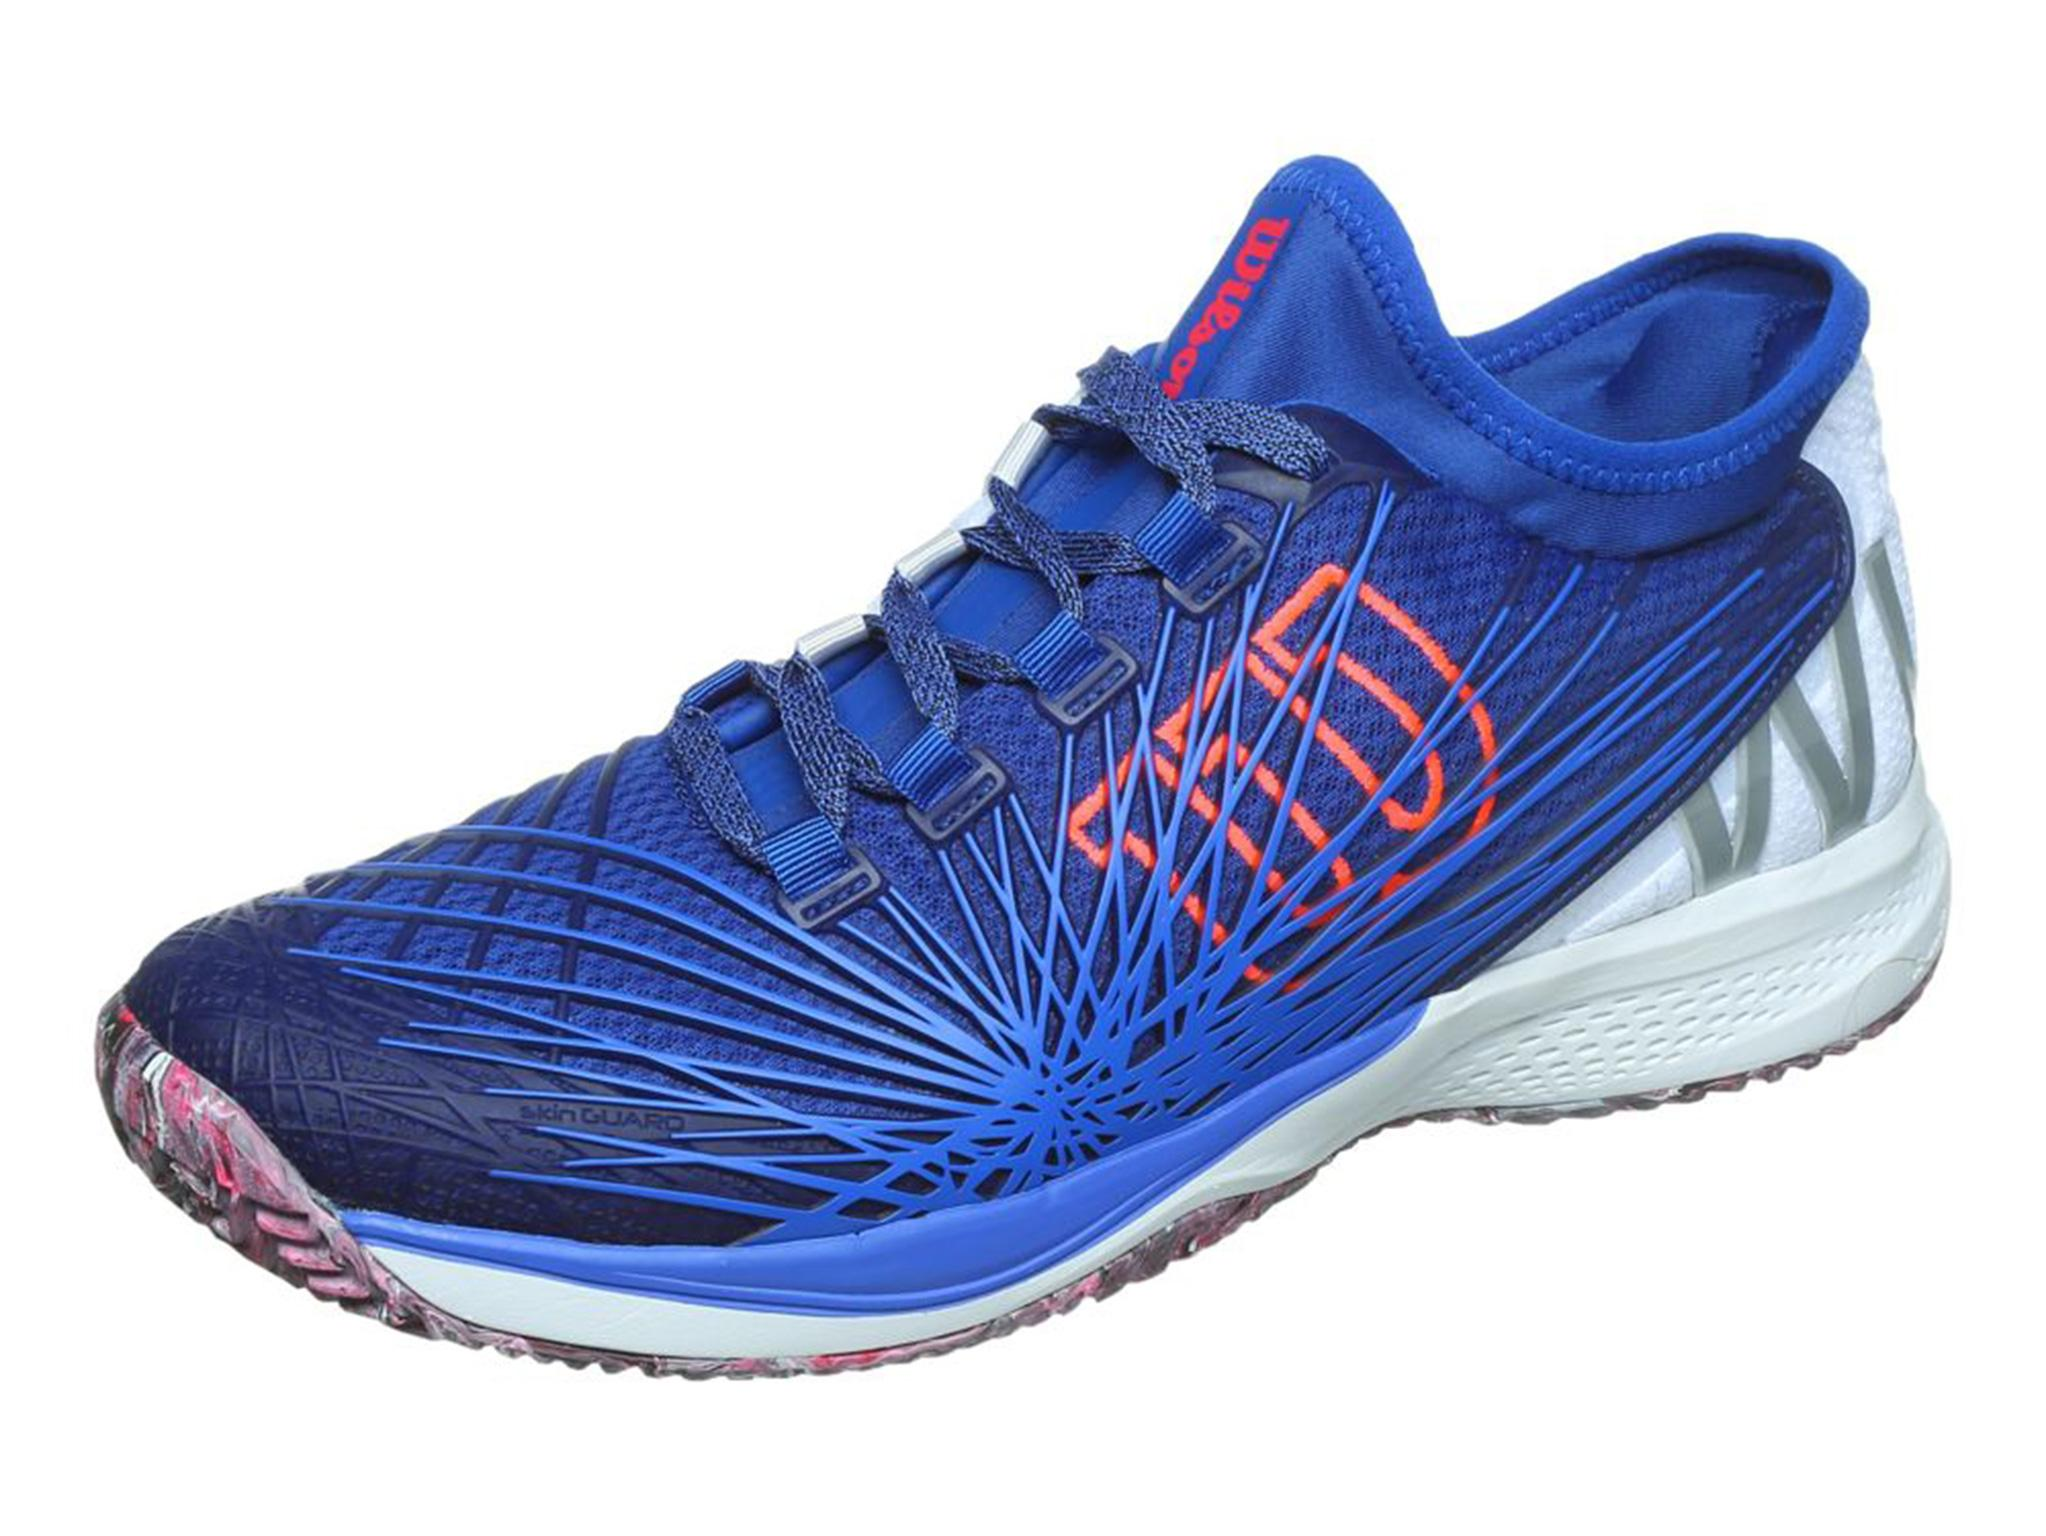 d0913cc0f8 10 best tennis shoes | The Independent